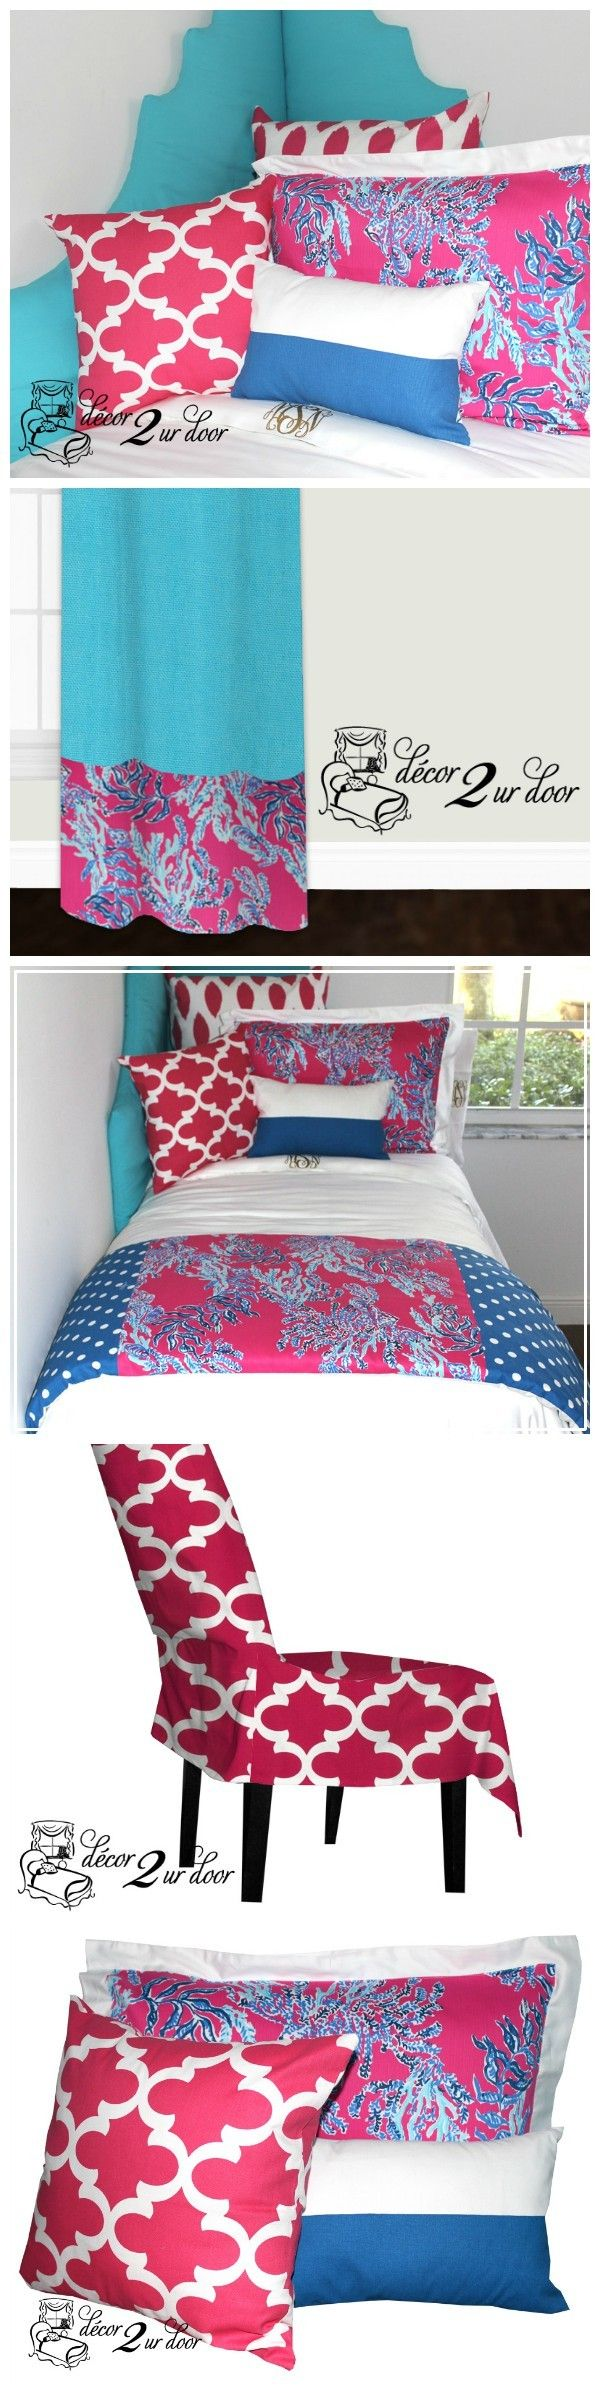 Lilly Dorm Room Bedding. Preppy Lilly Bedding And Décor. Decorate A Dorm  Room. Part 85